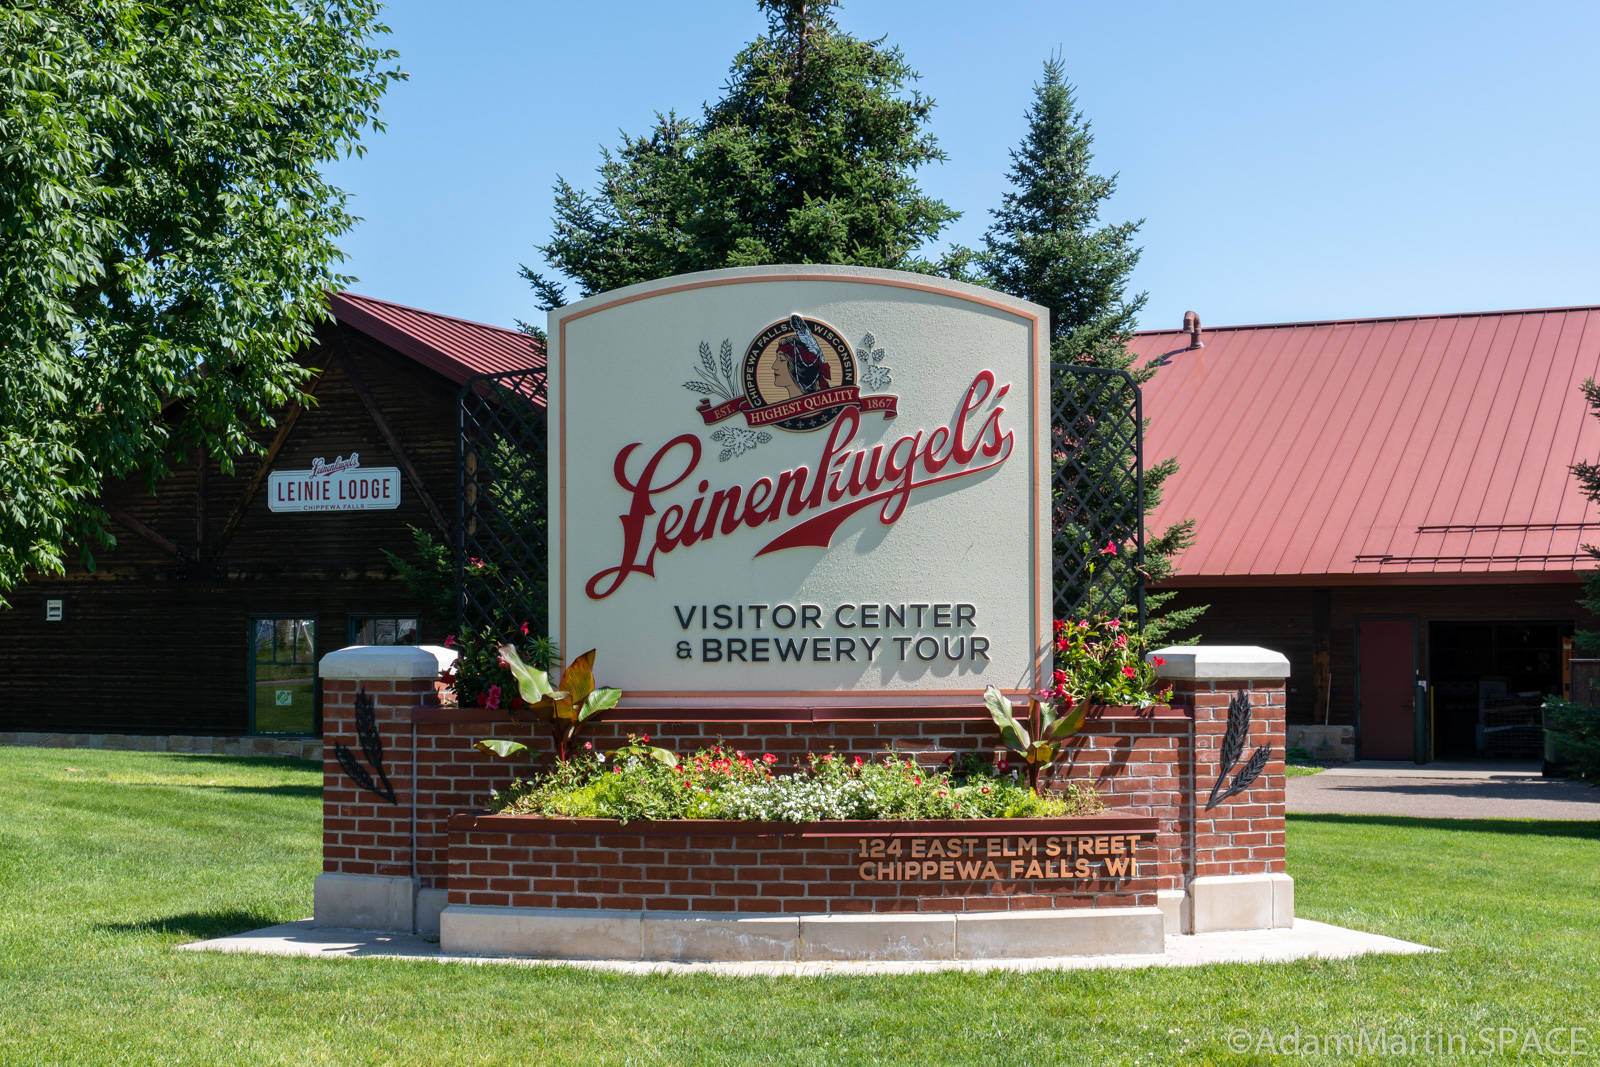 Leinenkugels Brewery & Leine Lodge